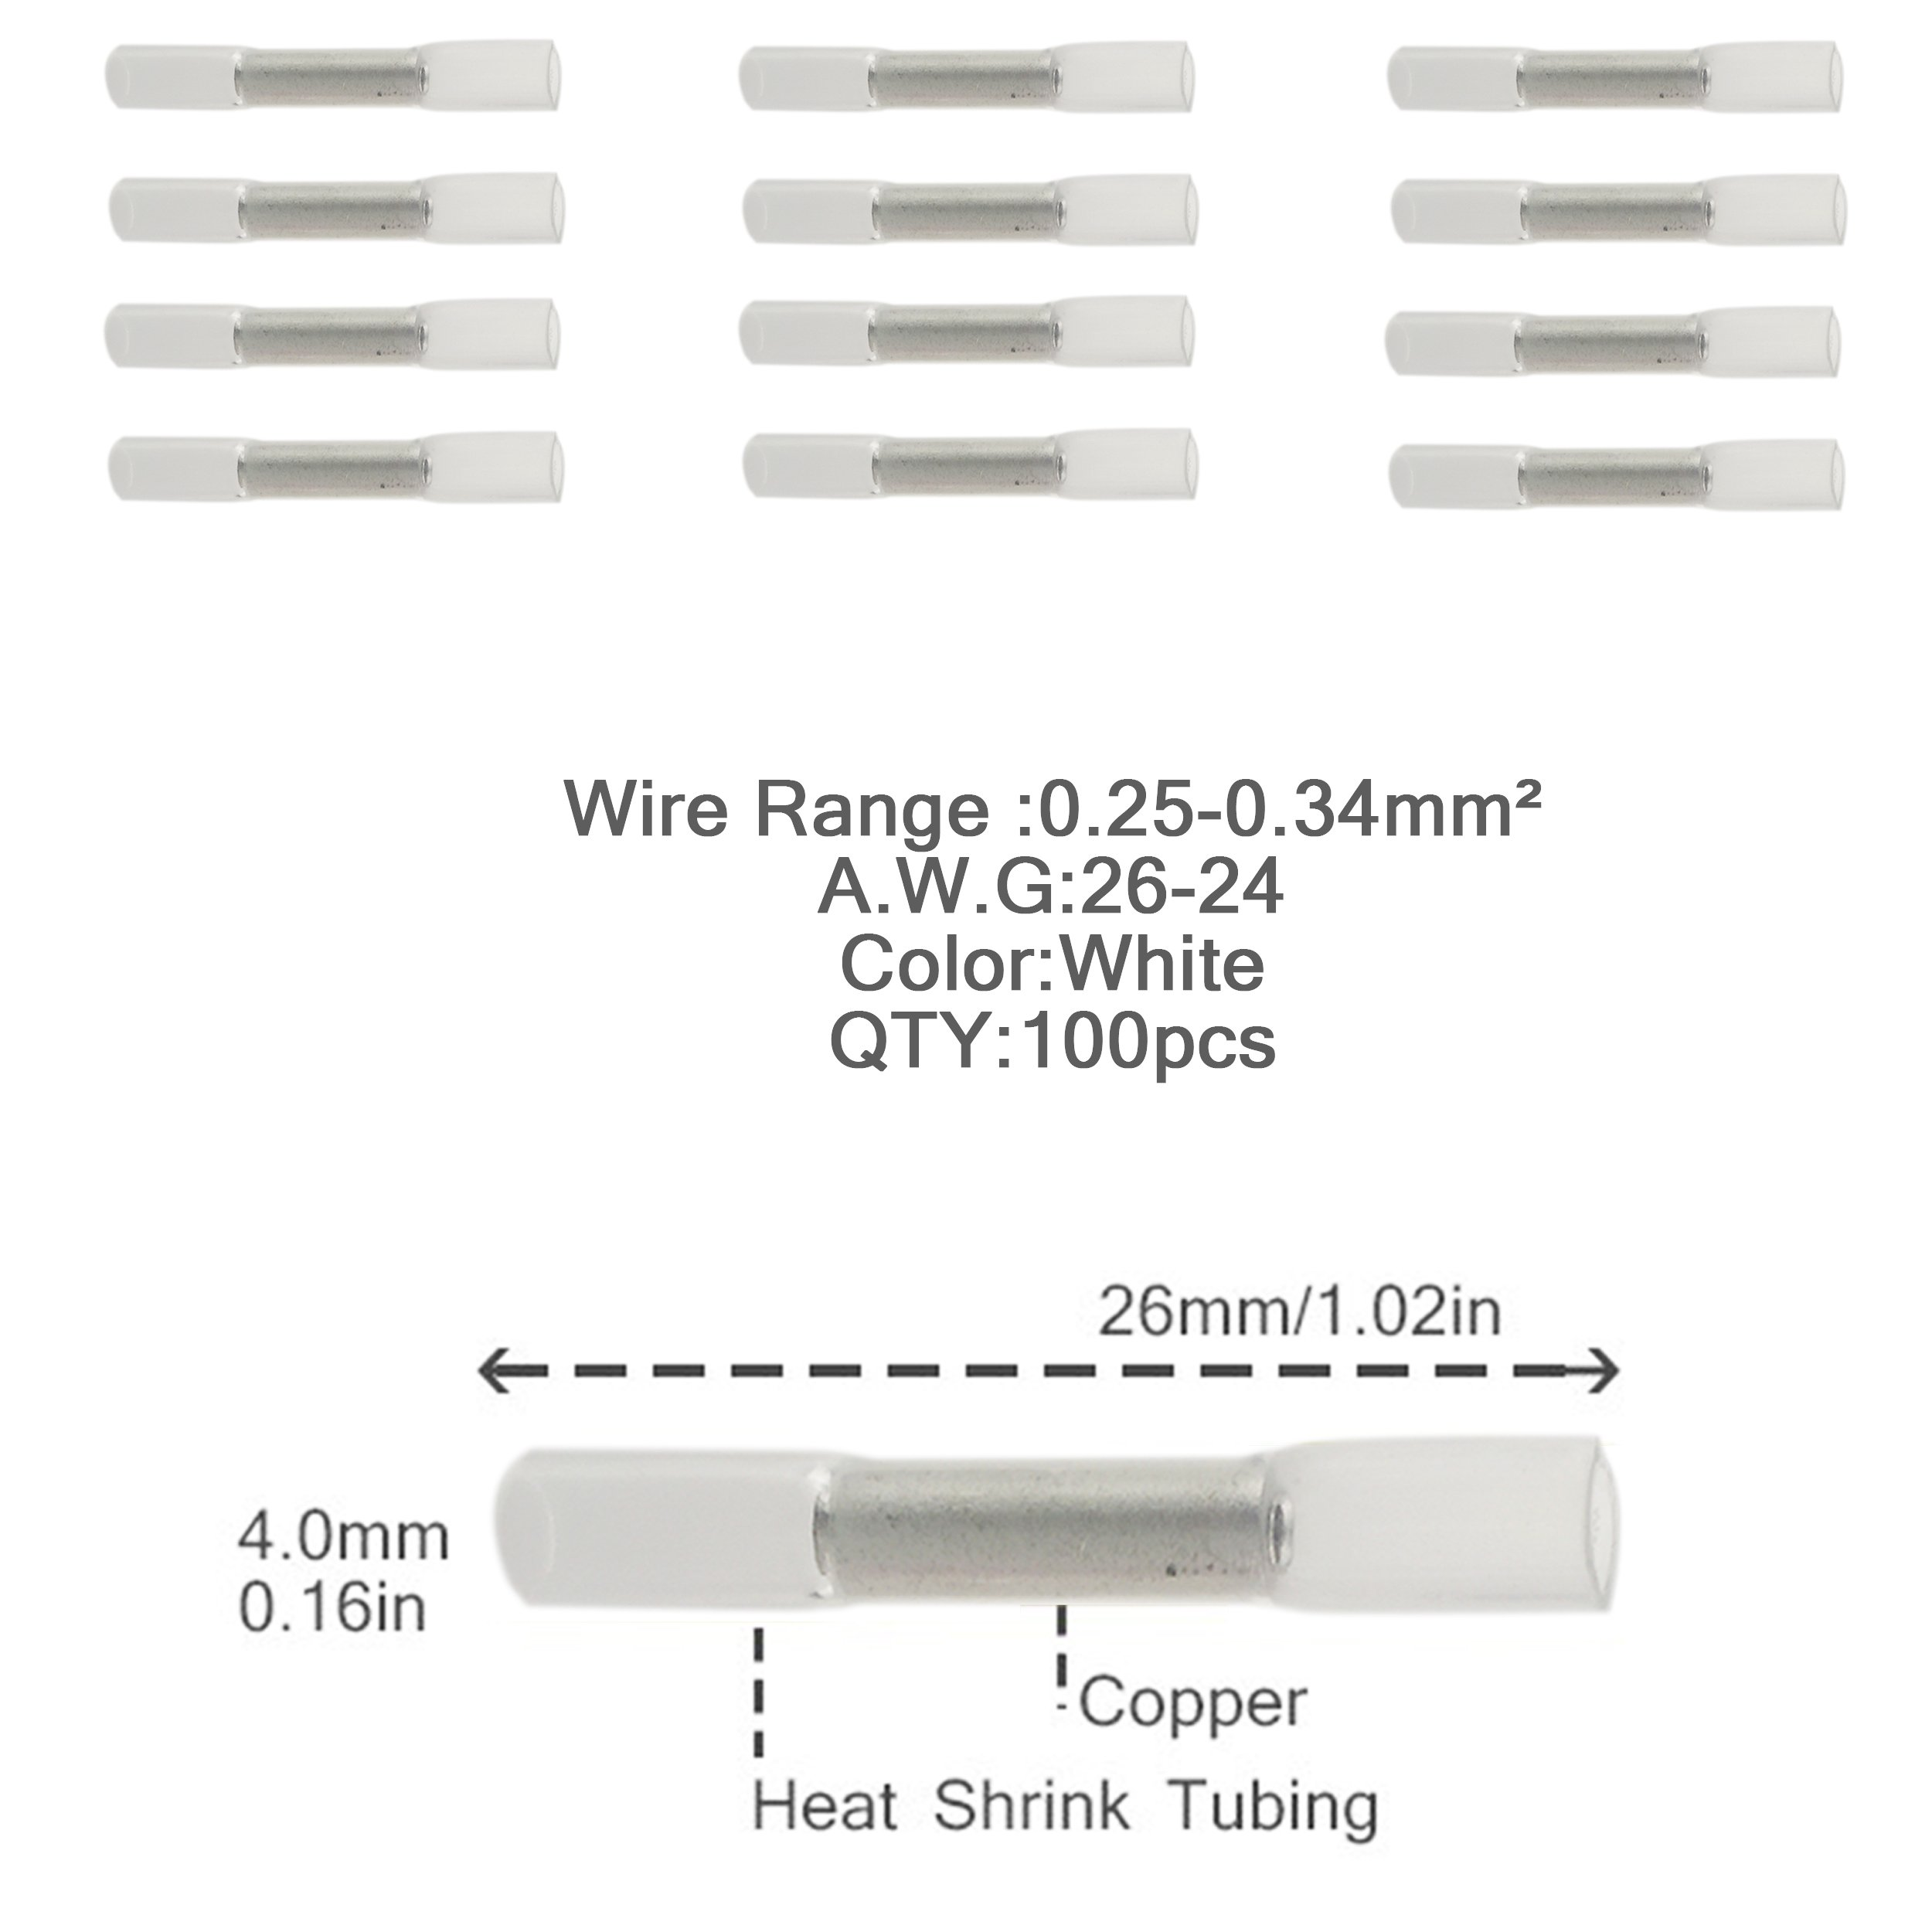 Iztoss 100pcs 26-24AWG Insulated Heat Shrink Butt Wire Electrical Crimp Terminal Connector white by IZTOSS (Image #3)